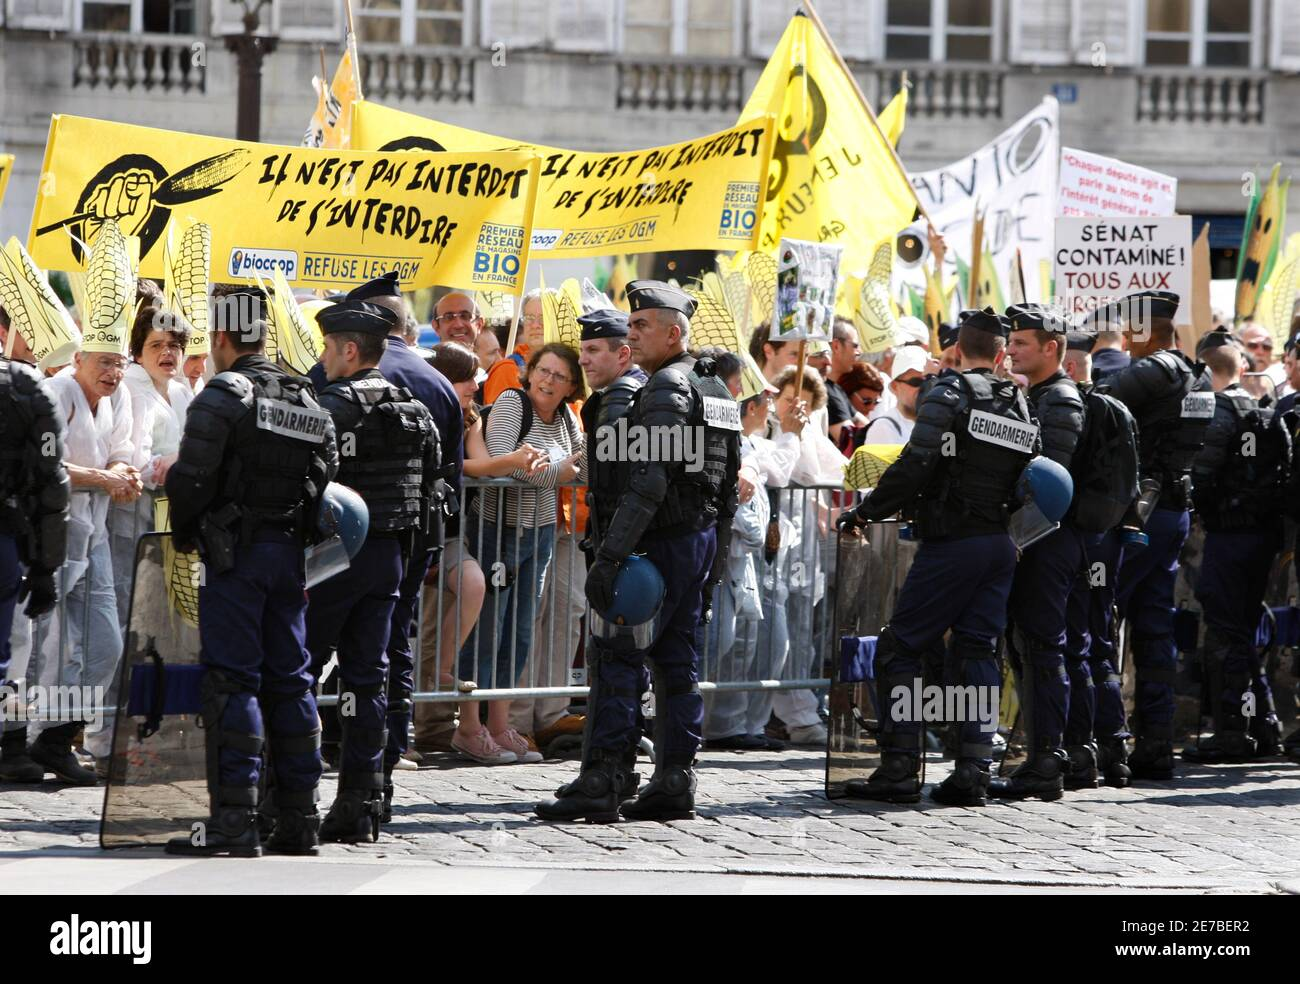 French anti-GMO activists face French gendarme during a demonstration in front the National Assembly in Paris May 13, 2008 ahead of the expected approval of a much disputed law which they say blurs the line between natural and genetically modified (GM) foods.    REUTERS/Charles Platiau  (FRANCE) Stock Photo